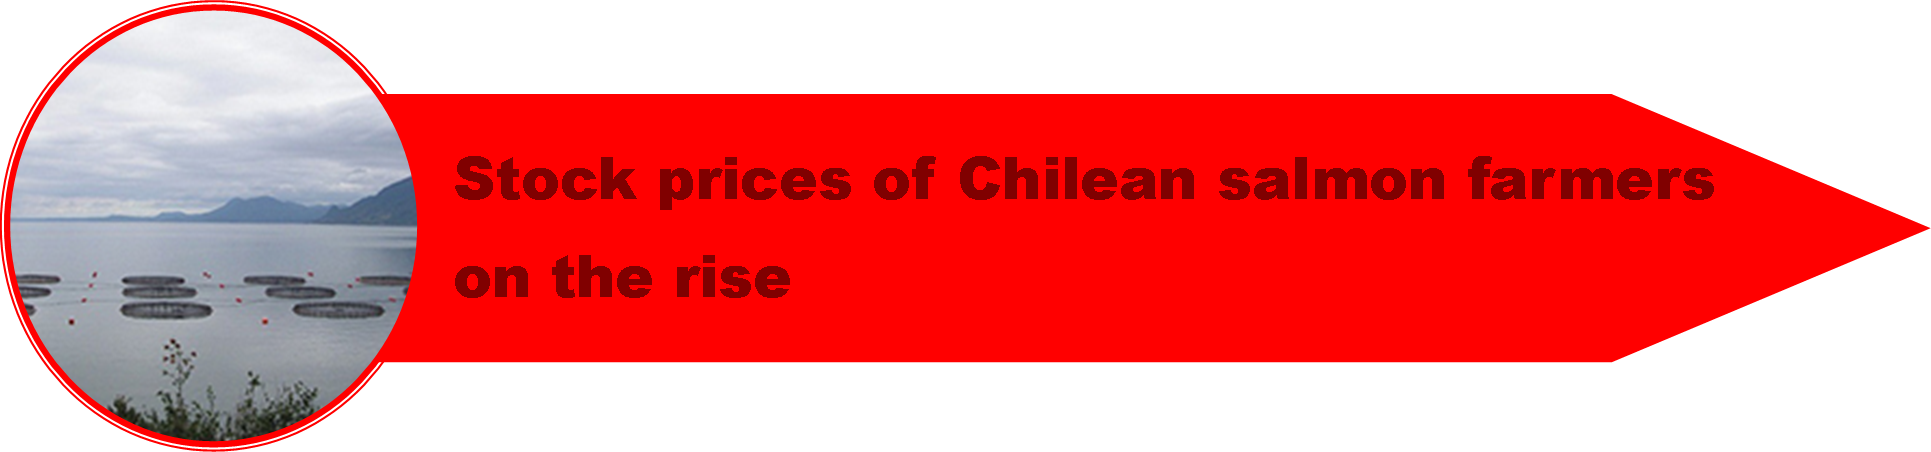 1_Chile_Crisis_3.png